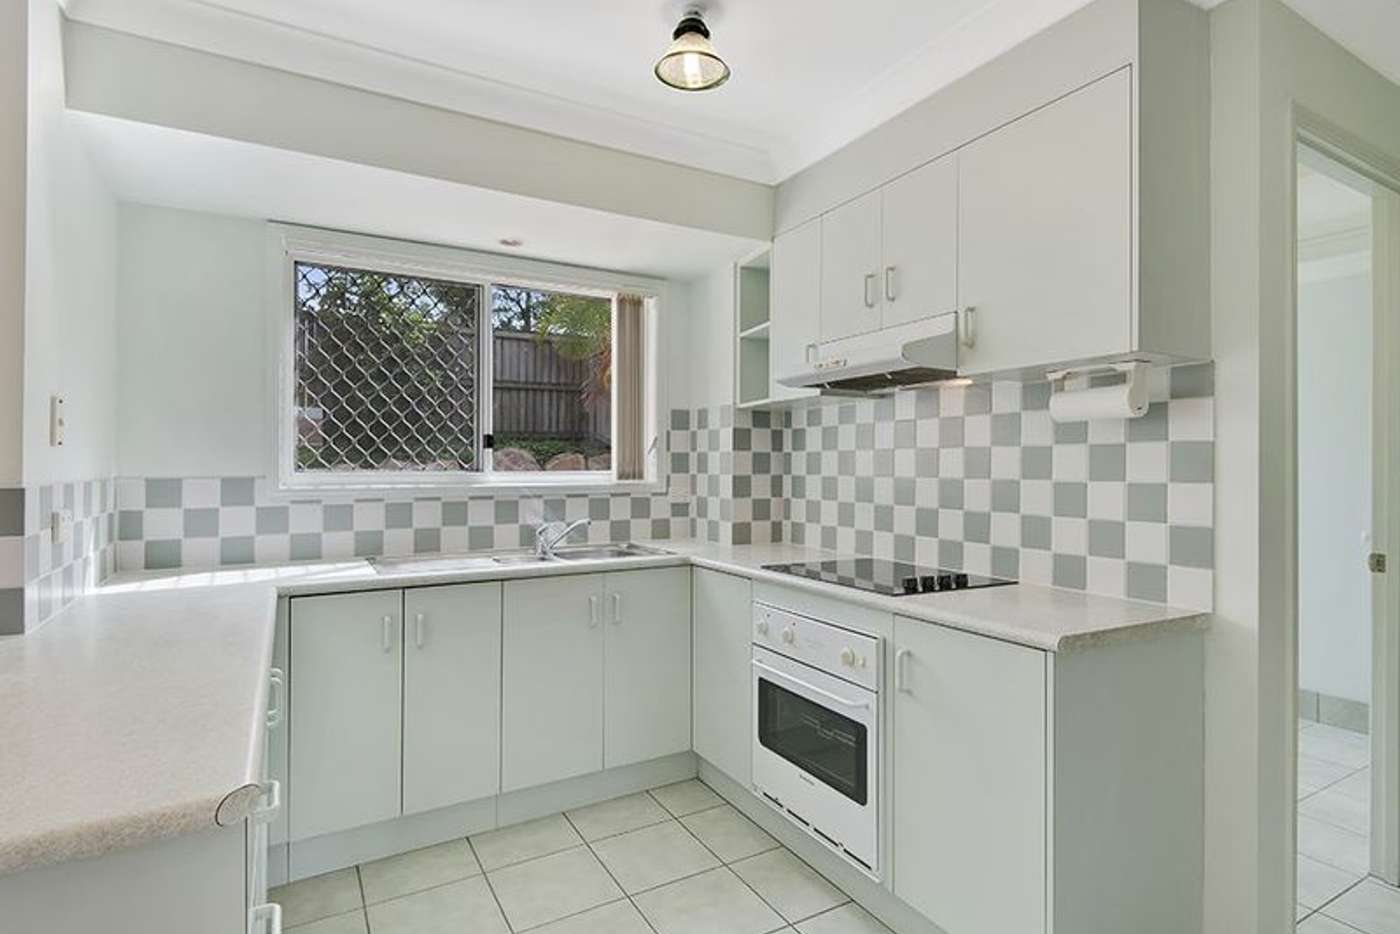 Sixth view of Homely house listing, 9/18 Swan Lake Crescent, Calamvale QLD 4116